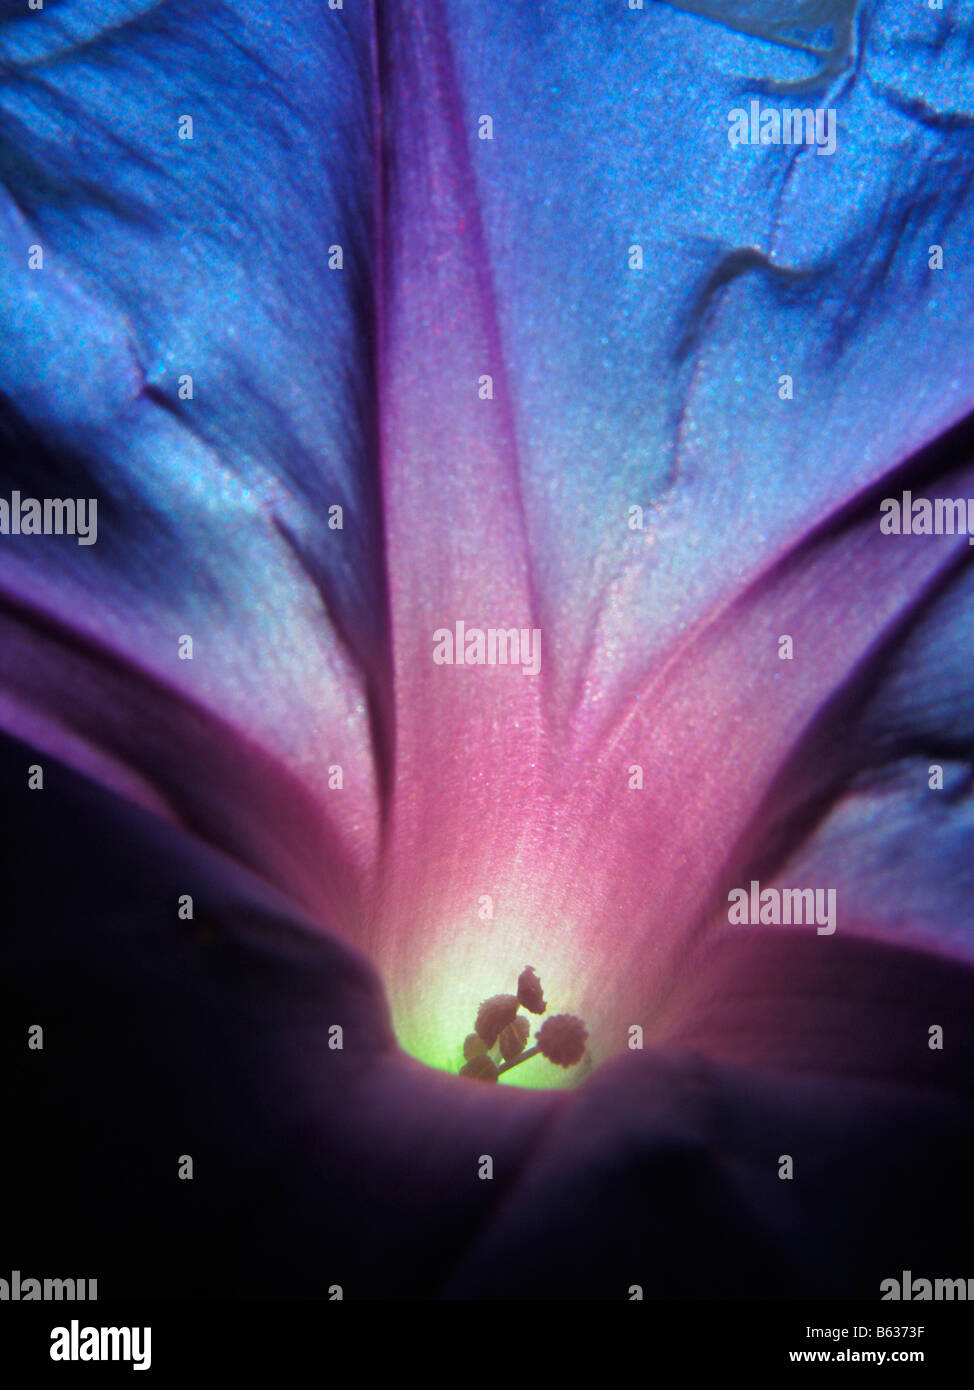 Close up of a blue and purple morning glory flower as sun light shines through it. Stock Photo